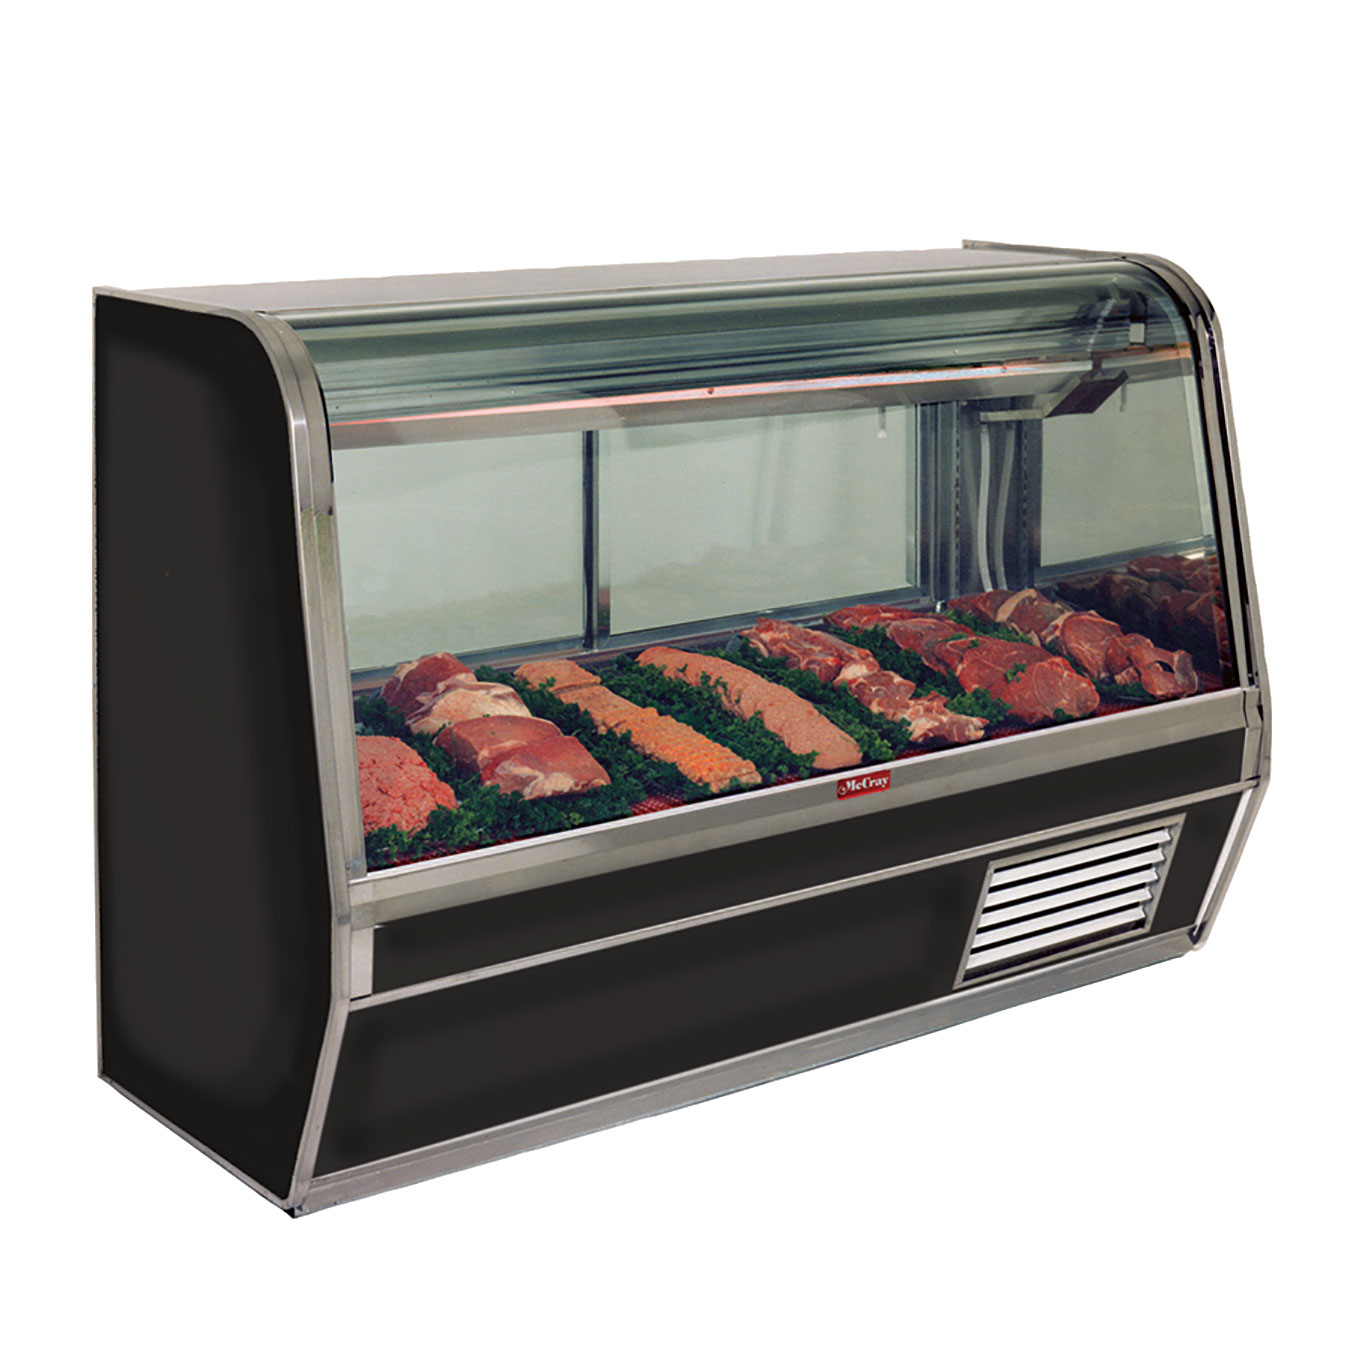 Howard-McCray R-CMS32E-6C-LED display case, red meat deli